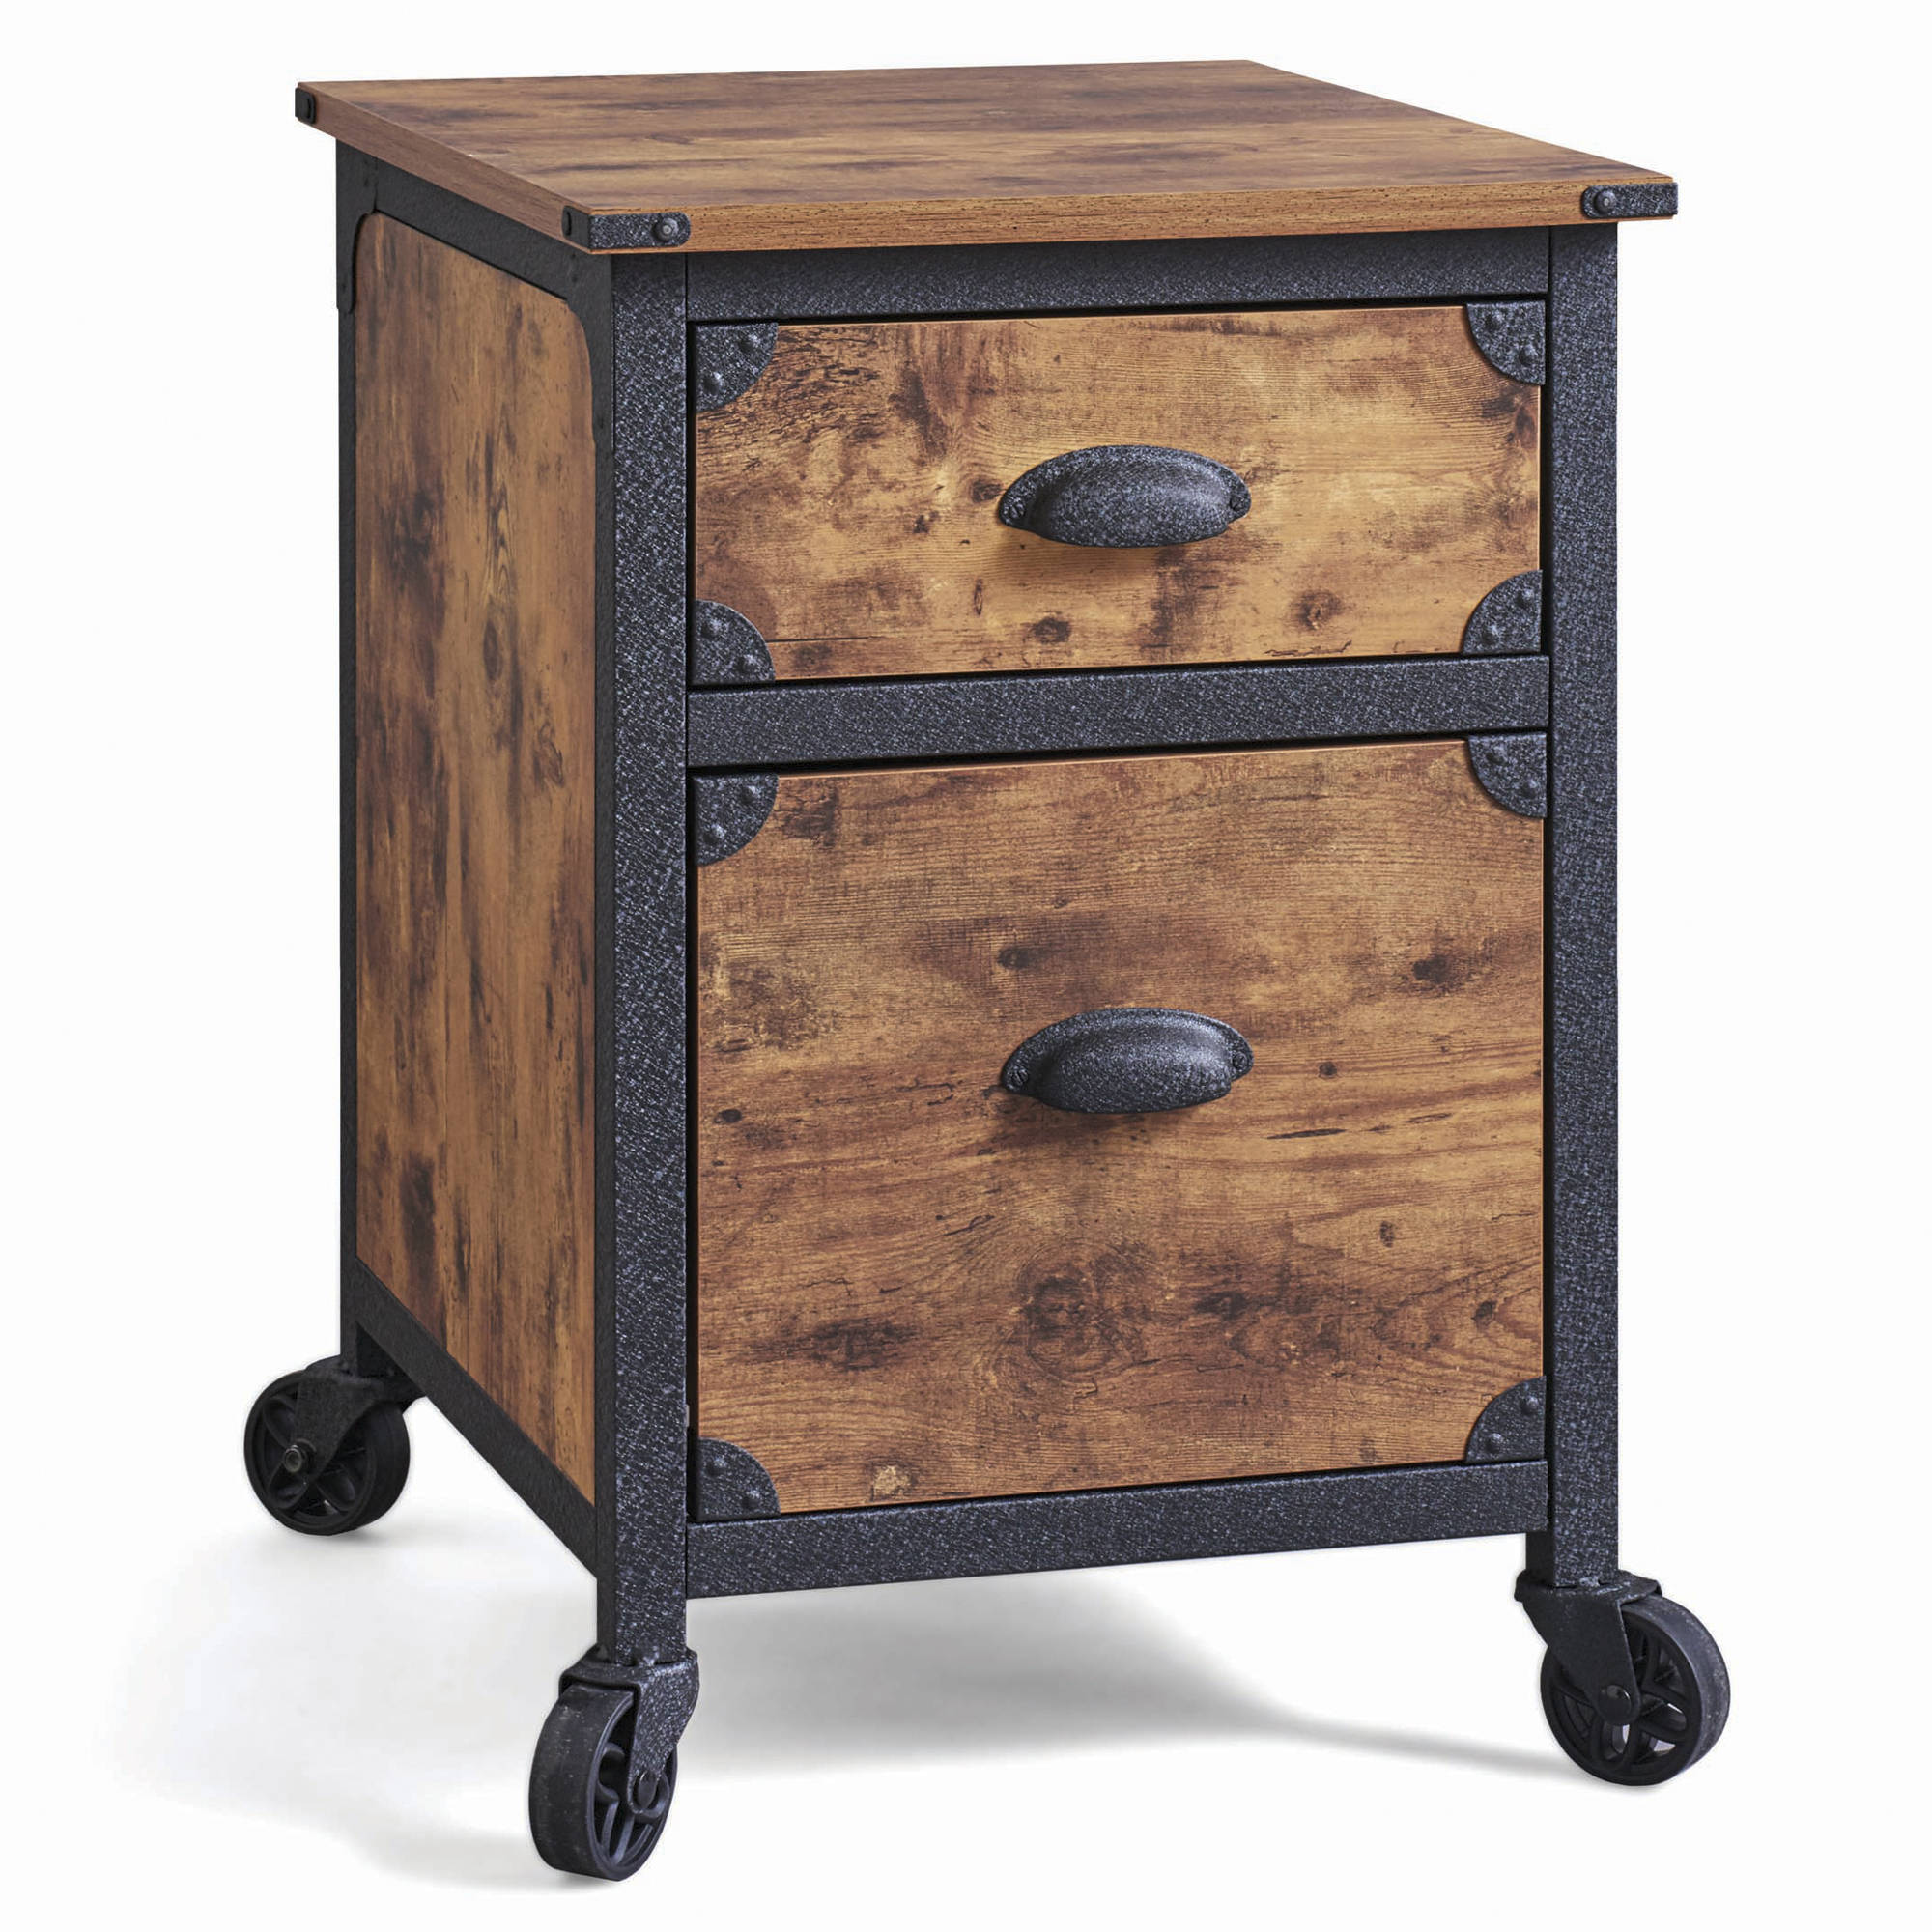 better homes and gardens rustic country file cabinet weathered pine finish walmartcom